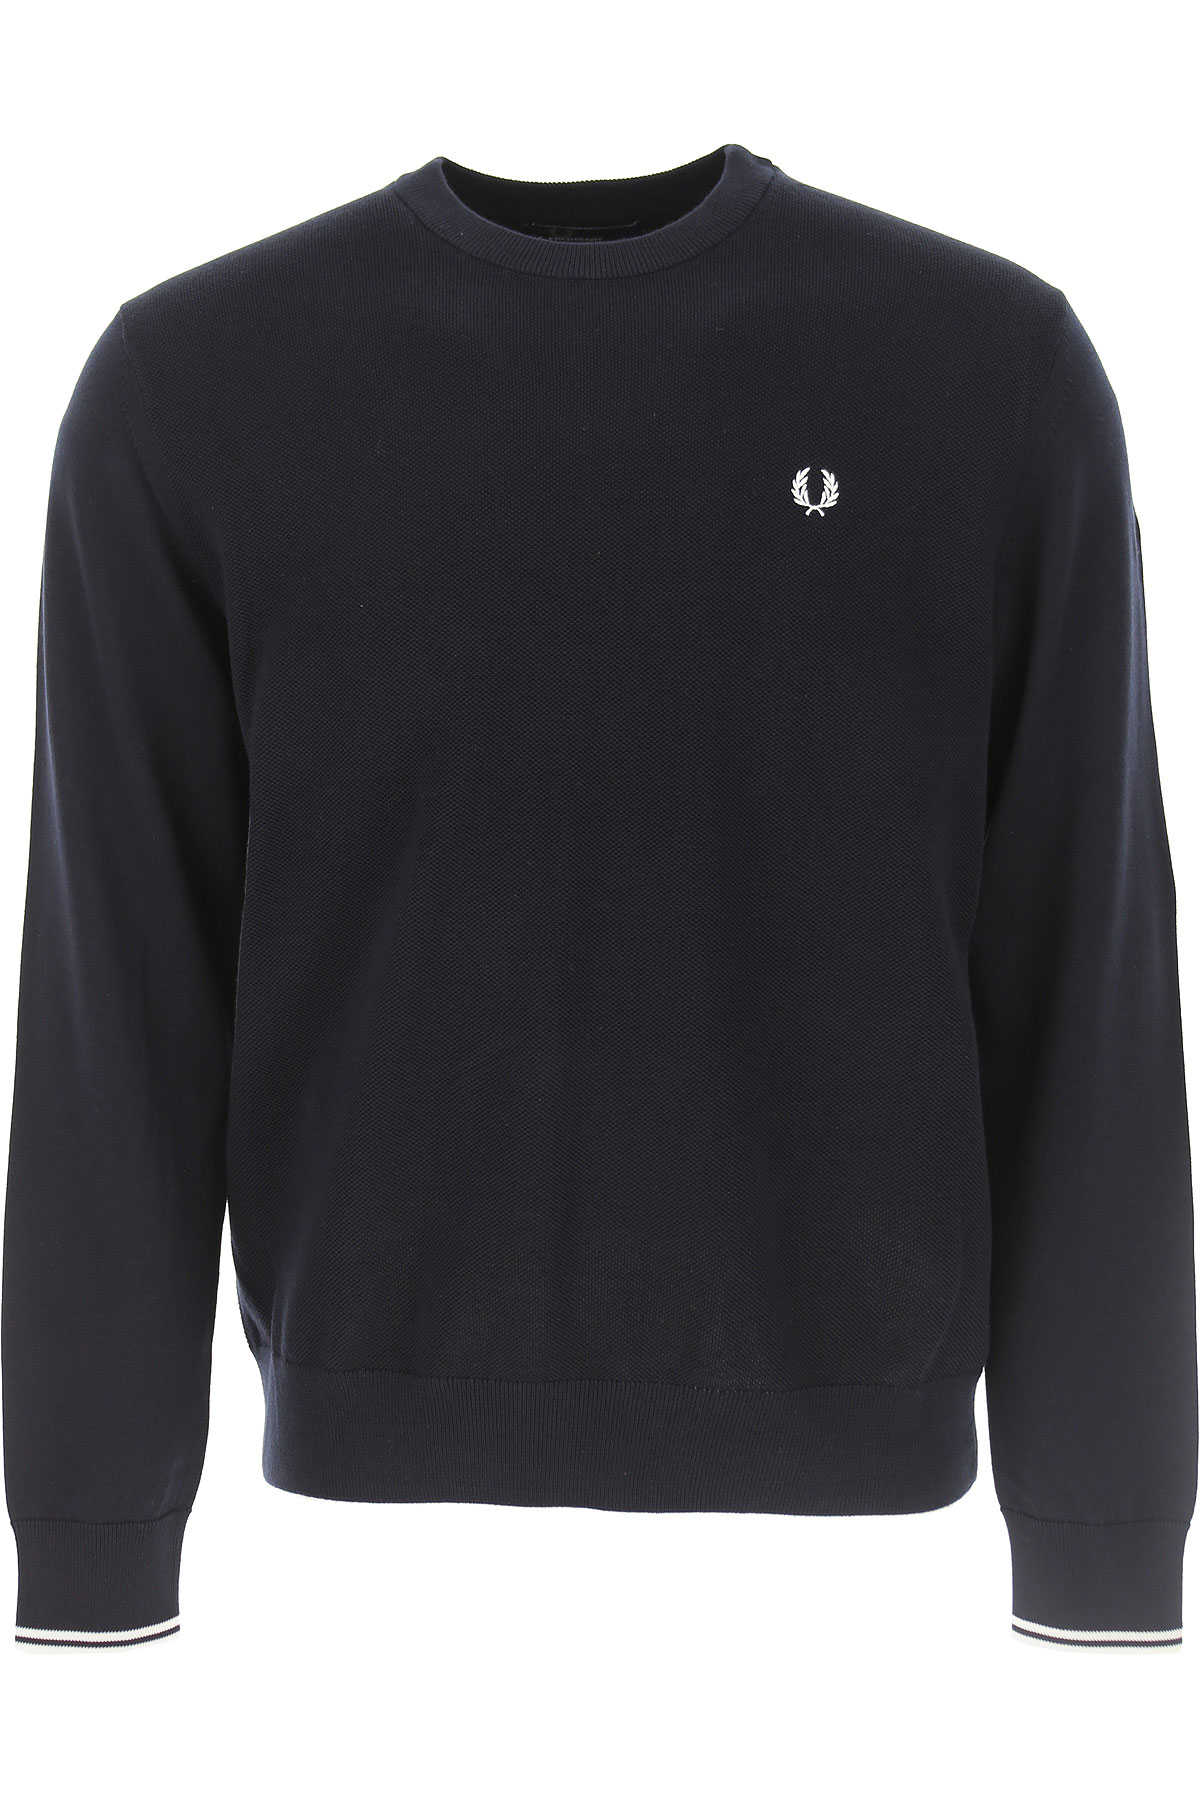 Fred Perry Sweater for Men Jumper Dark Blue Navy USA - GOOFASH